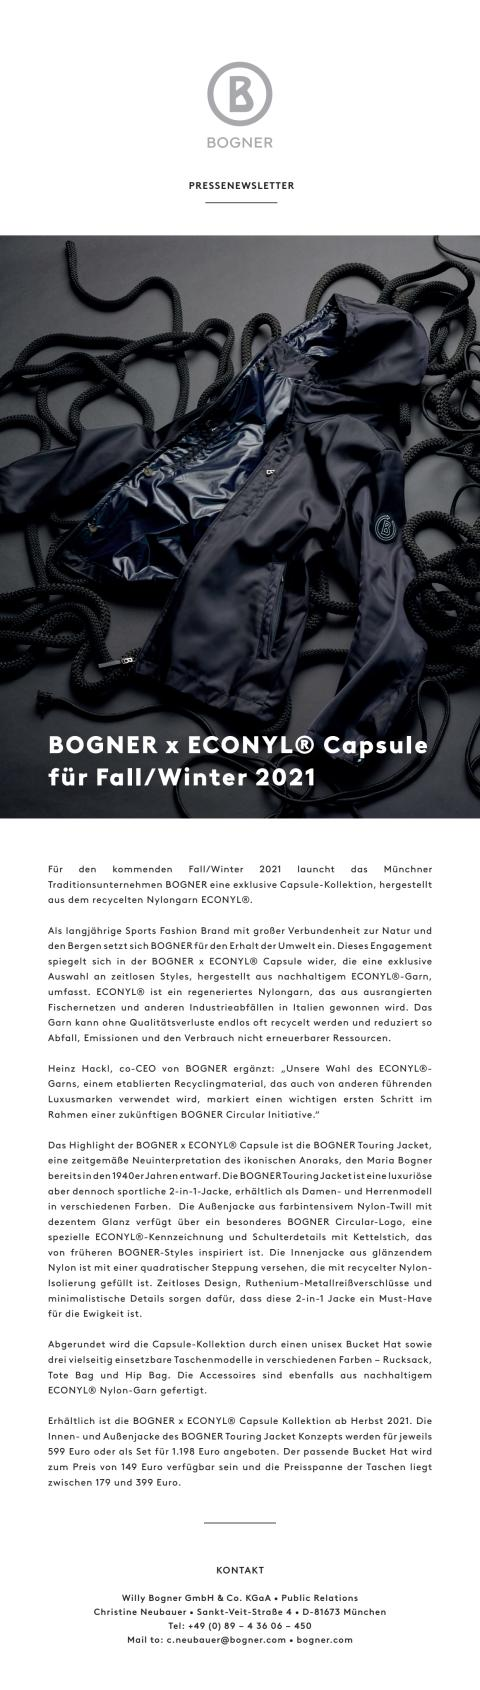 BOGNER x ECONYL® Capsule for Fall/Winter 2021